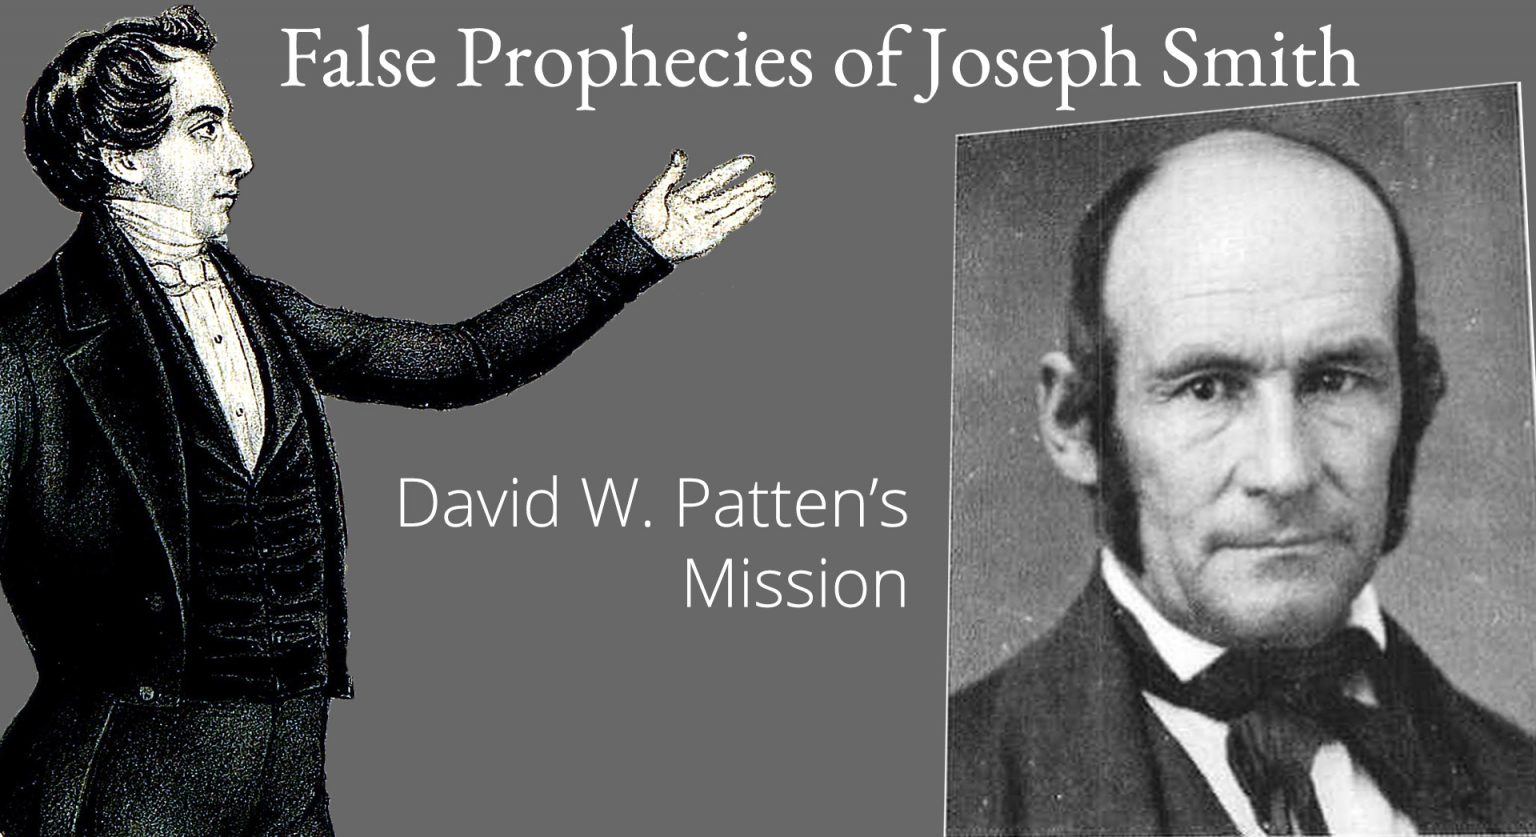 False Prophecies of Joseph Smith – David W. Patten's Mission